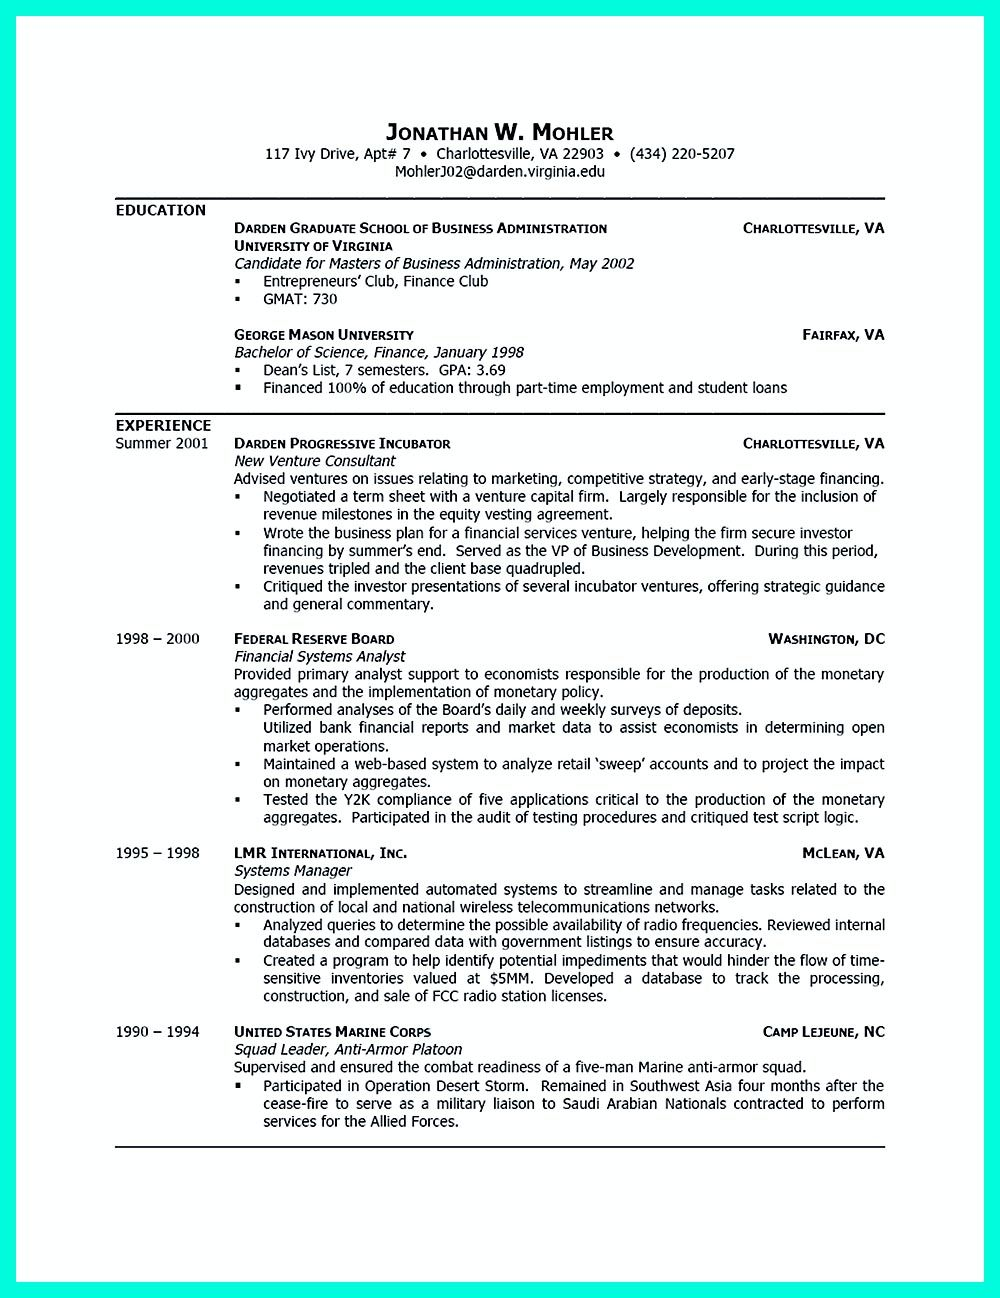 Resume Templates For Recent College Graduates College Resume Is Designed For College Students Either With Or